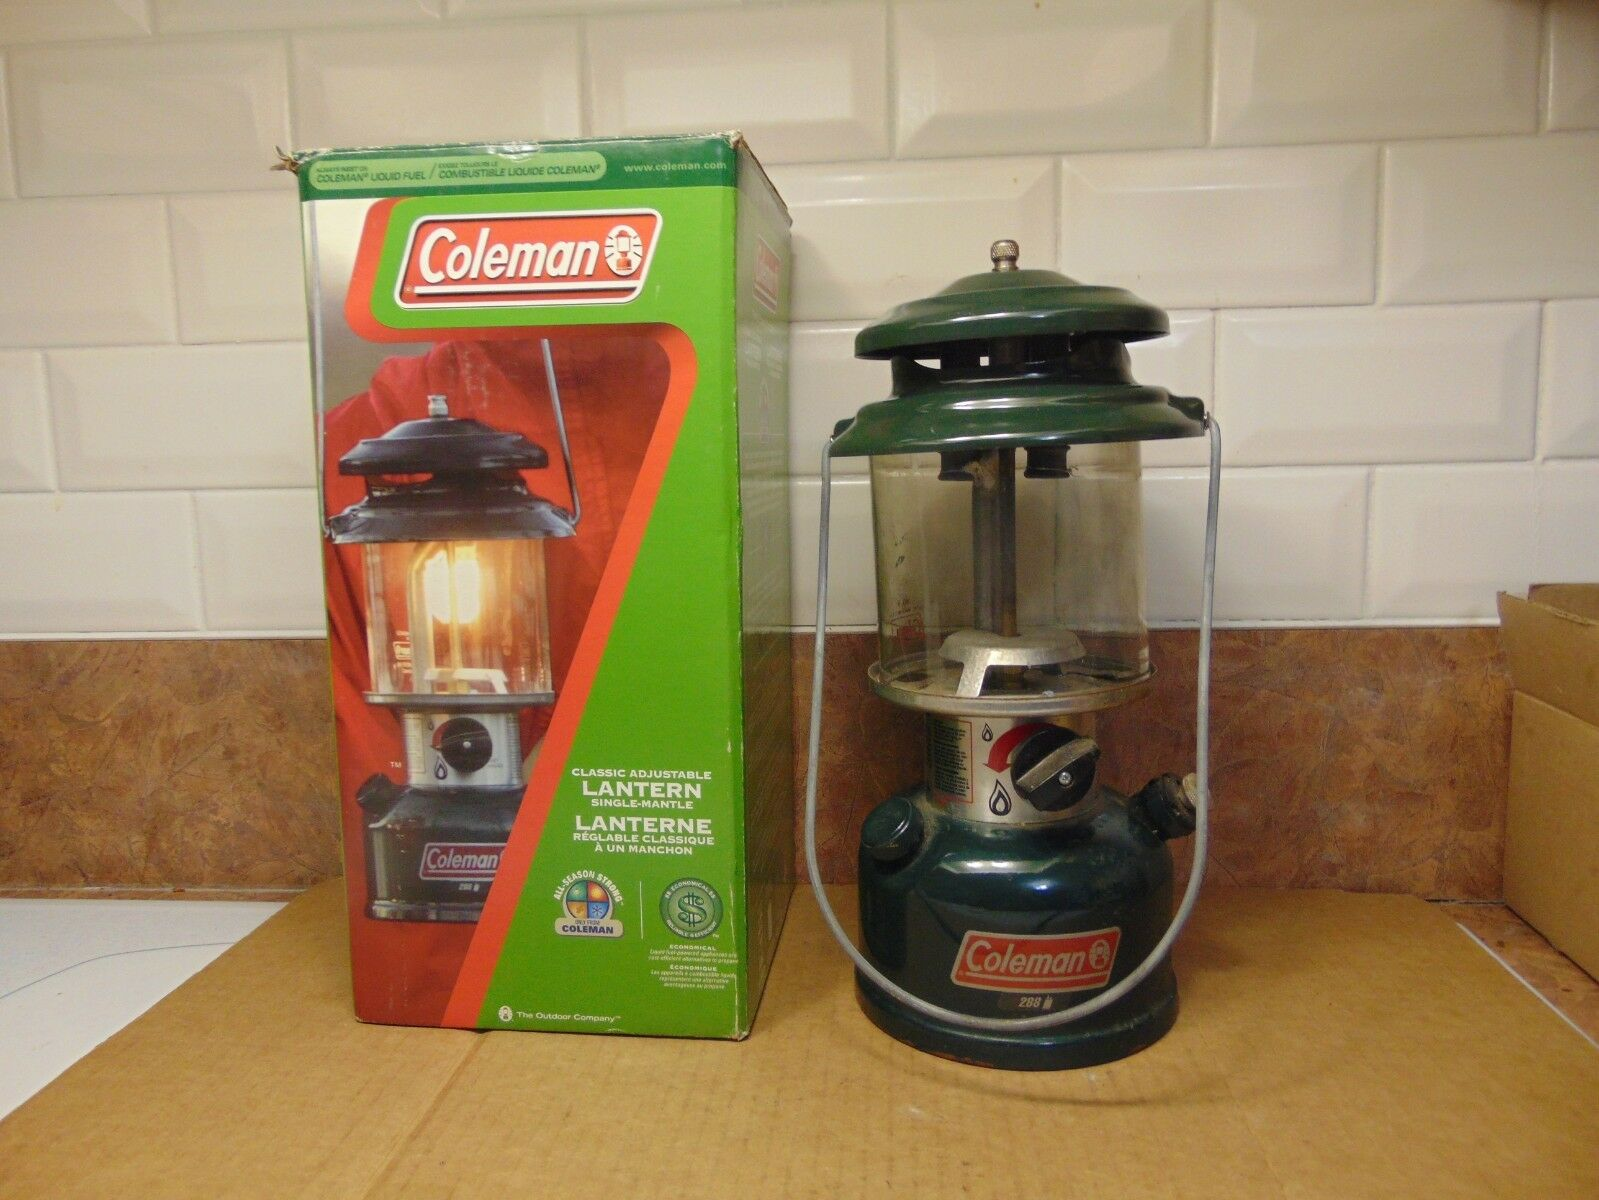 Vintage   lantern  coleman   288     nice  new products novelty items